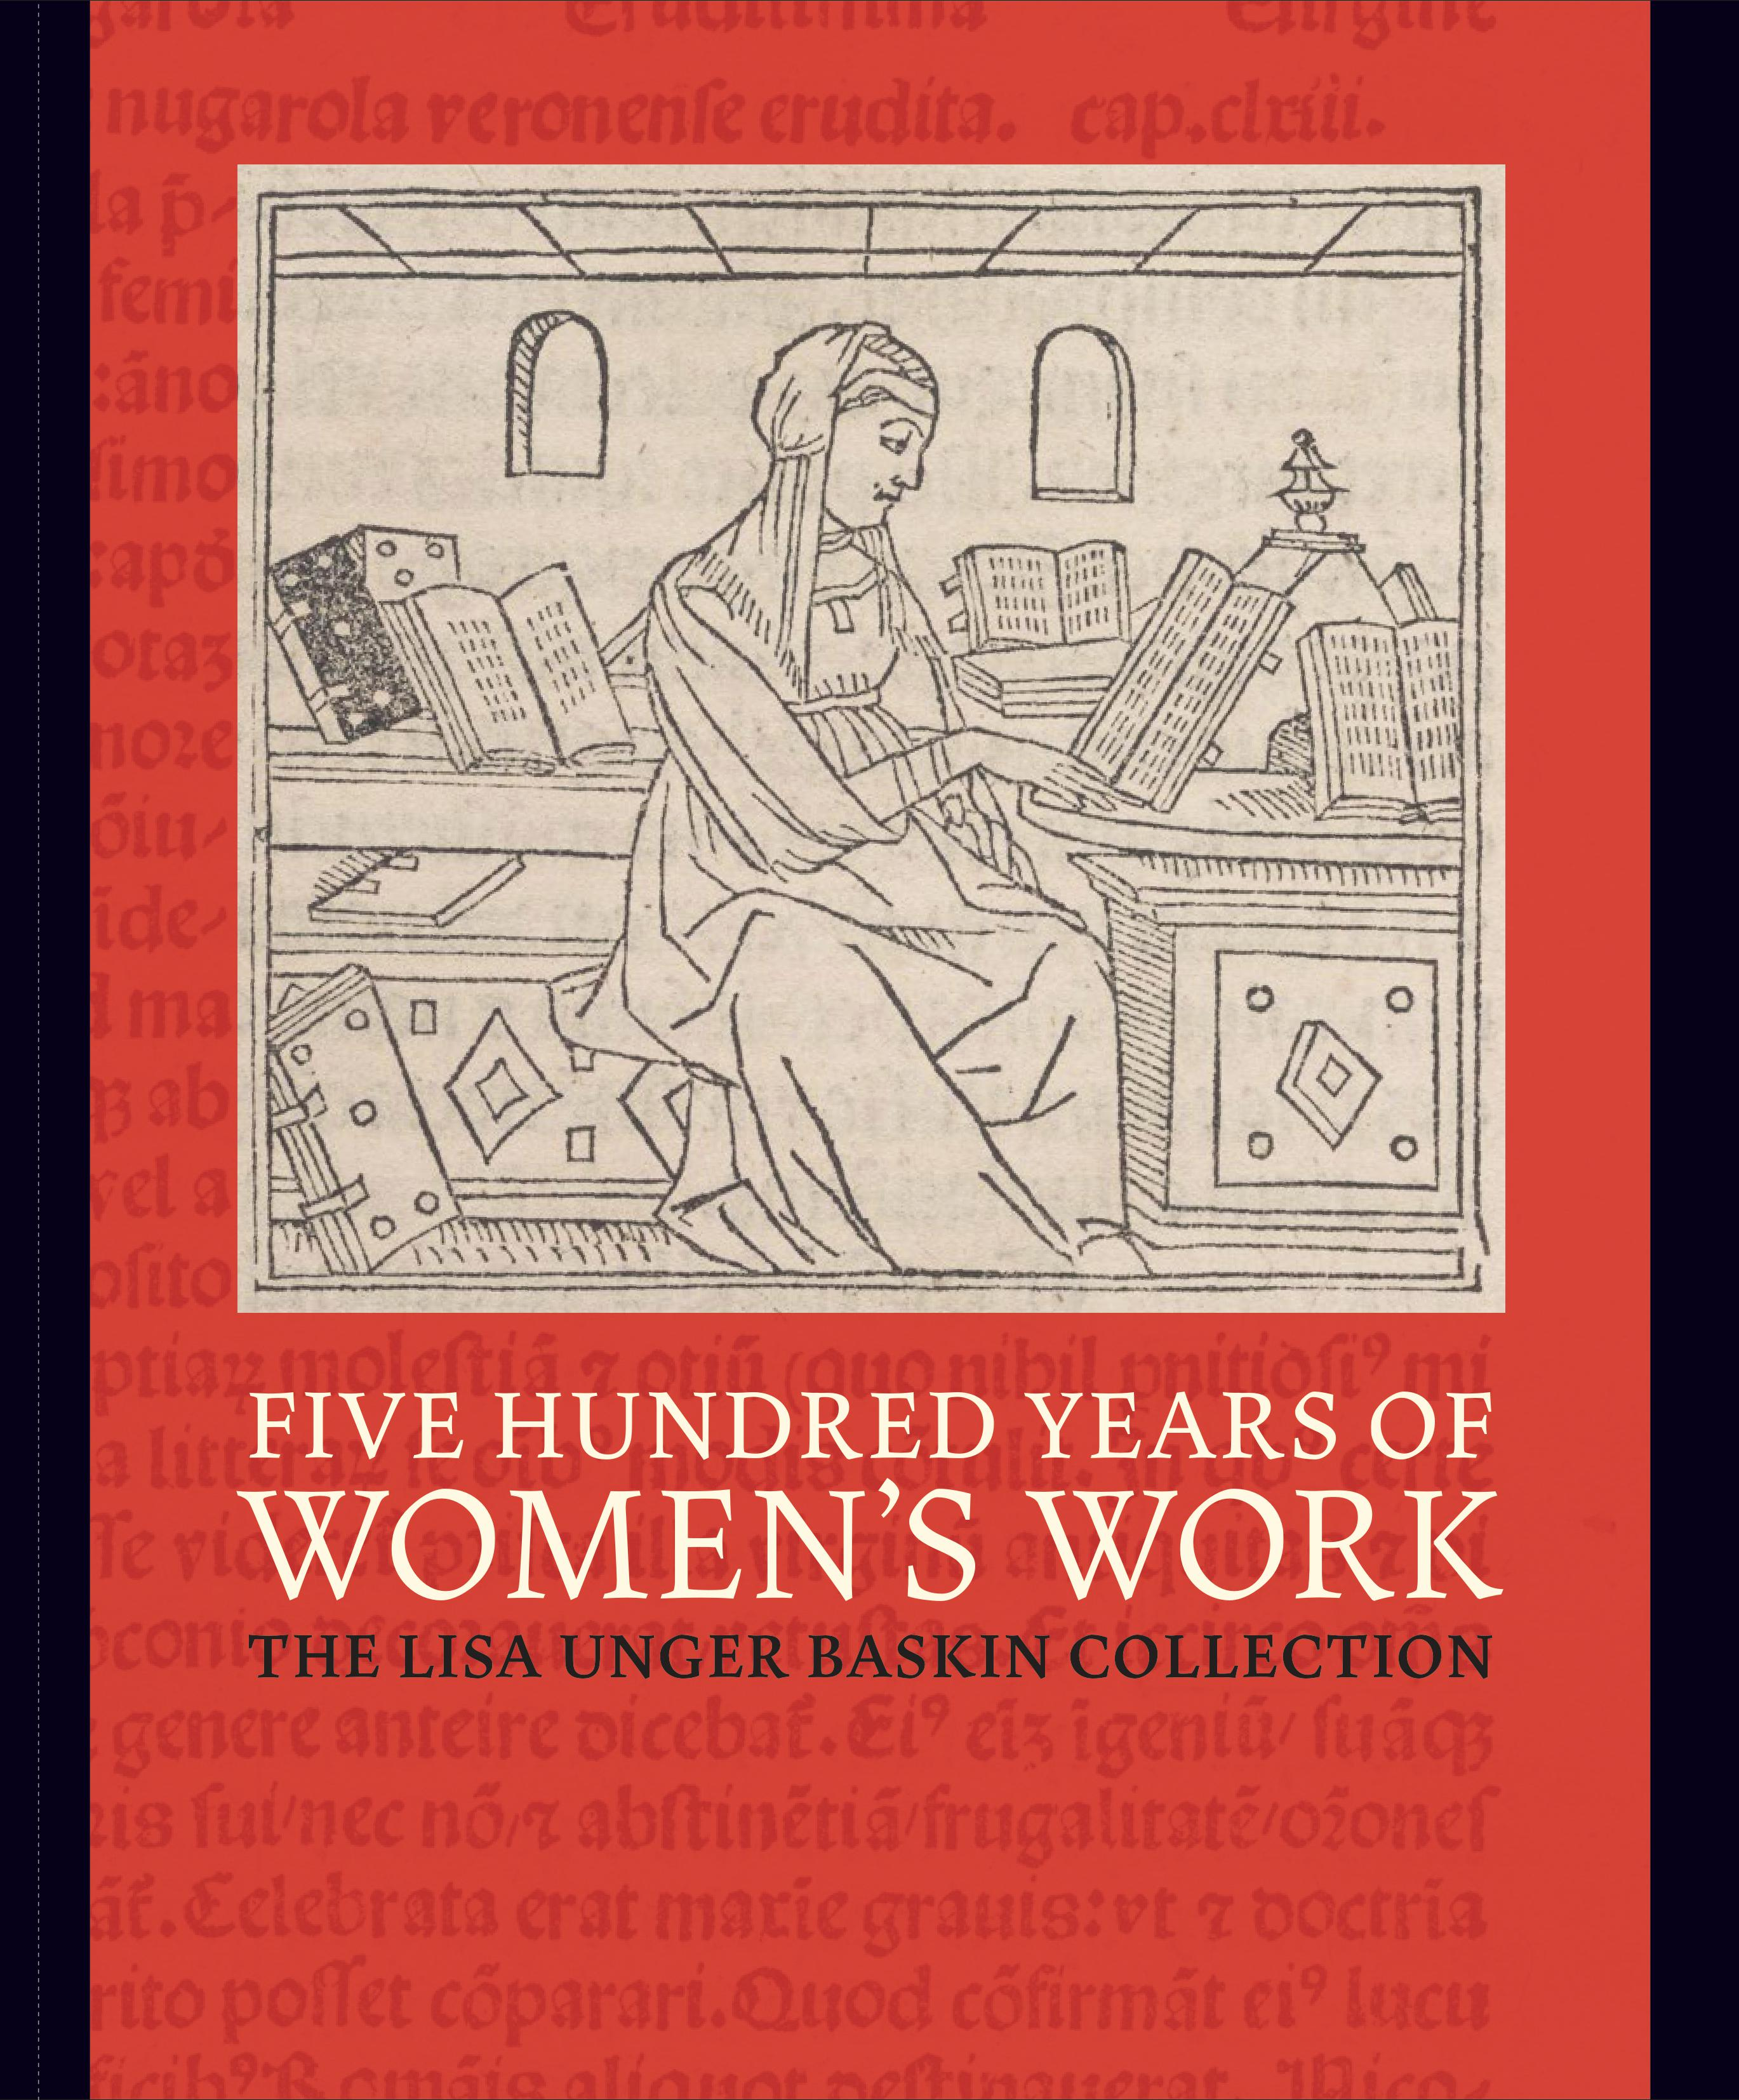 Five Hundred Years of Women's Work: A Conversation with Lisa Unger Baskin